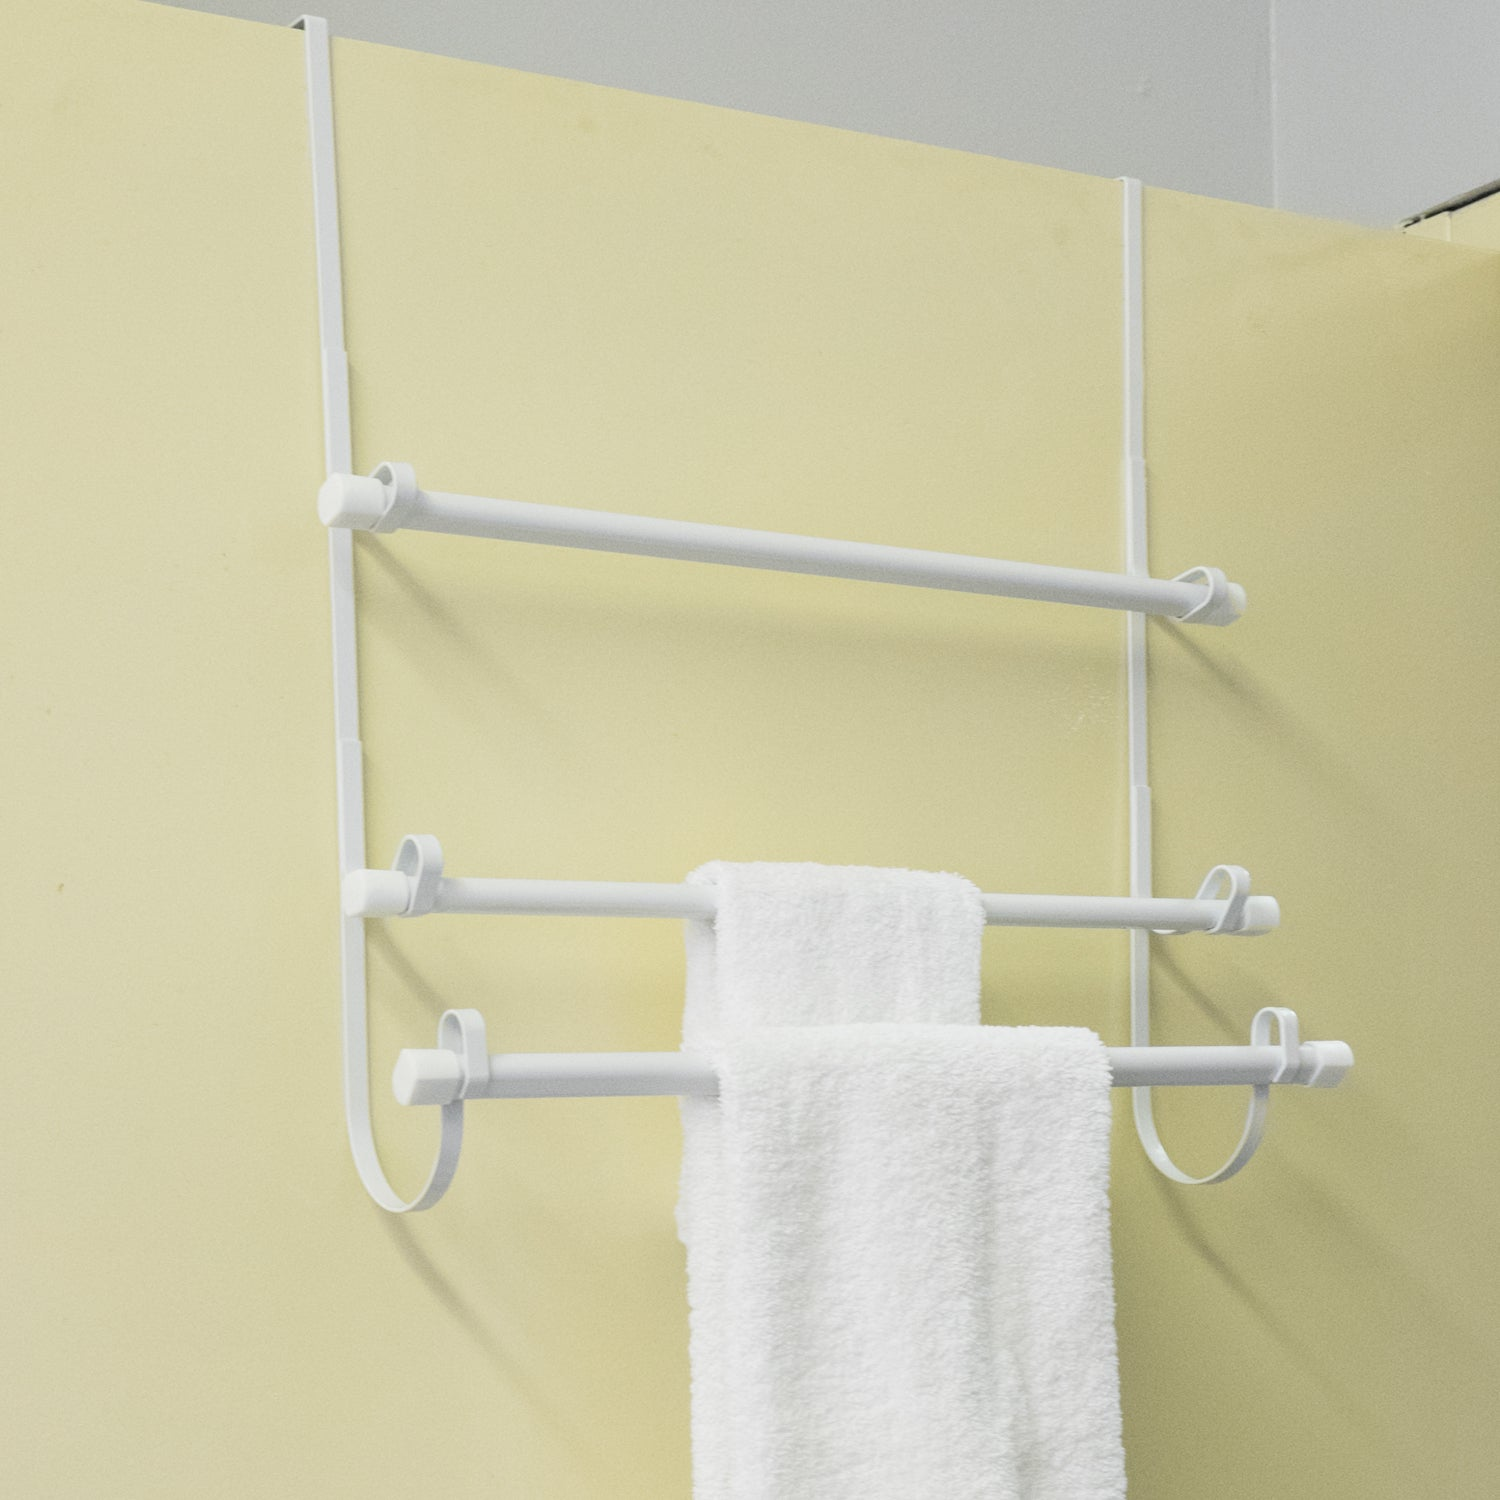 Over The Door Towel Rack White On Free Shipping Orders 45 12045932